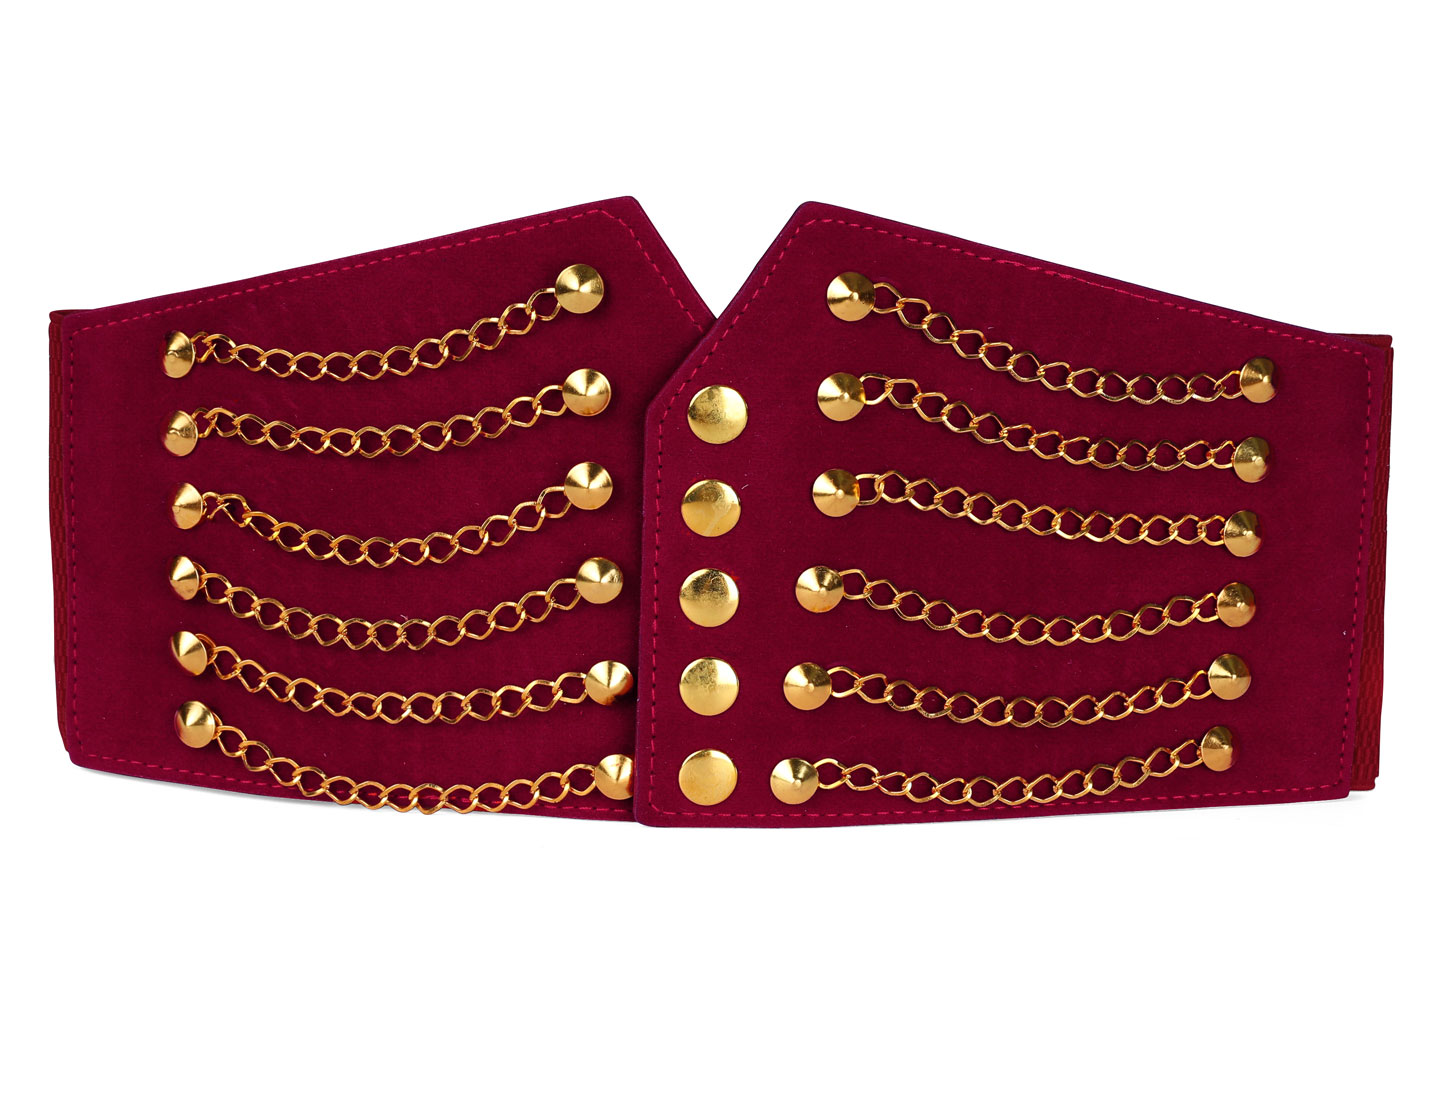 Women Rivet Chains Decor Elastic Wide PU Waistband 64cm Length Red